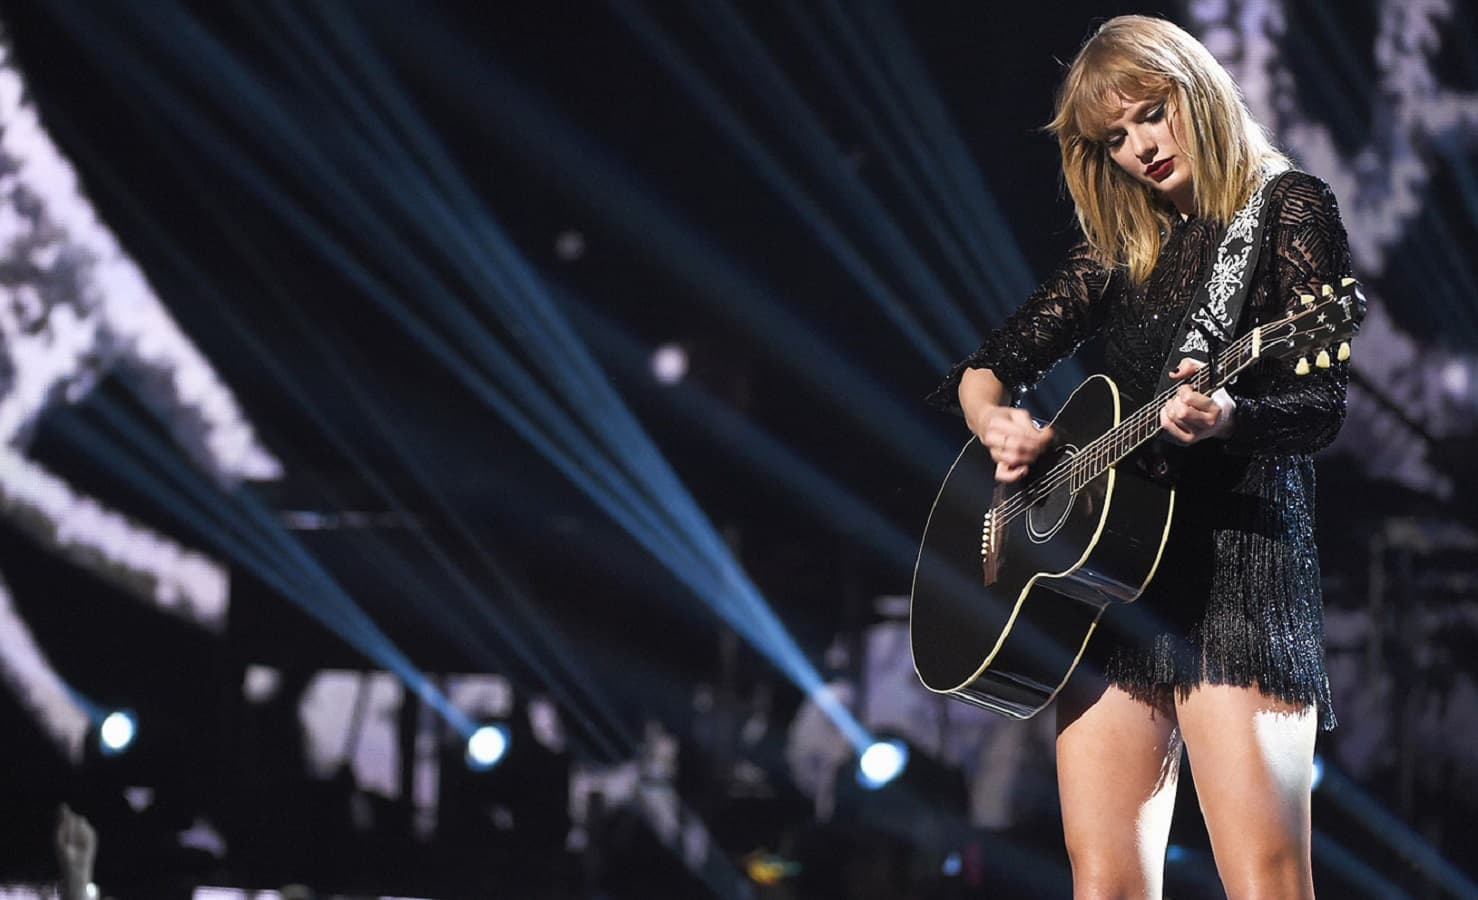 taylor swift playing guitar at concert